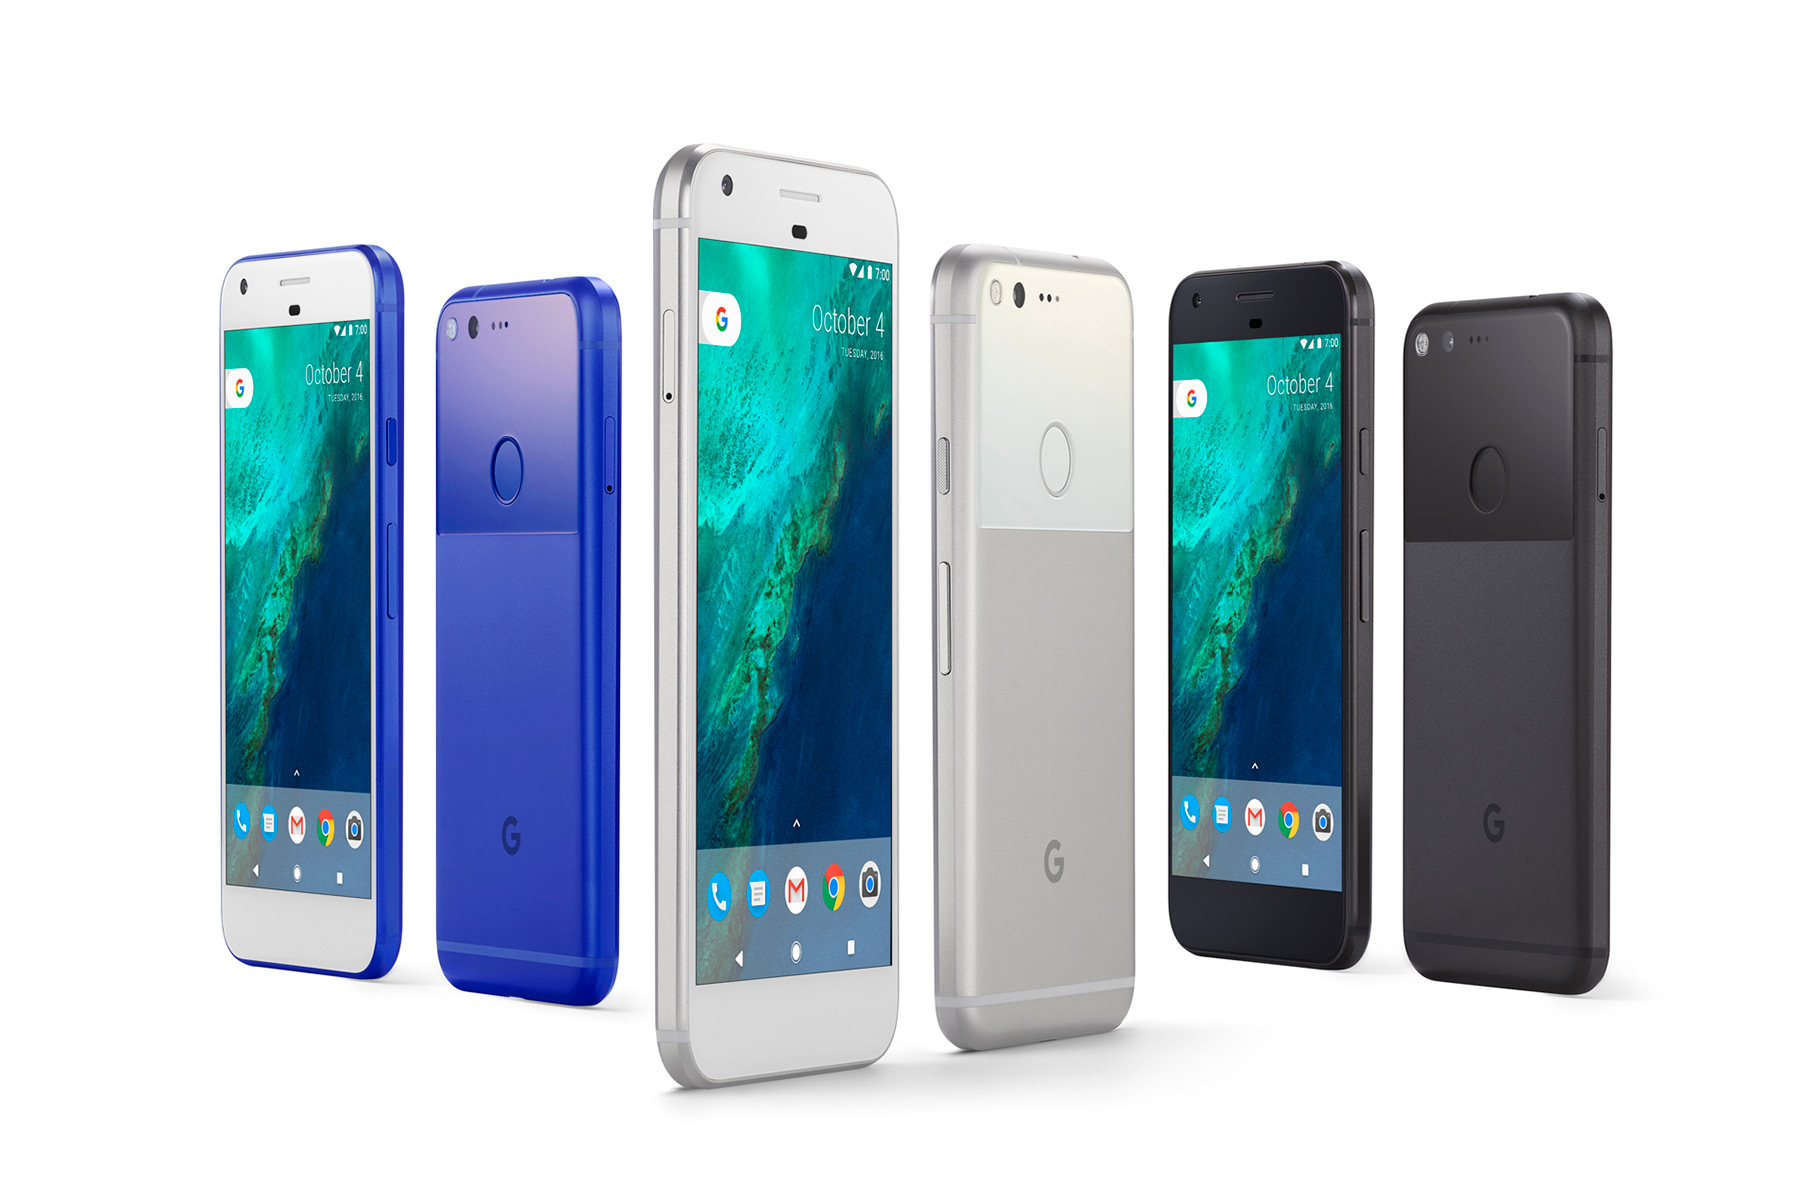 the pixel phone is exactly what we wanted so of course we